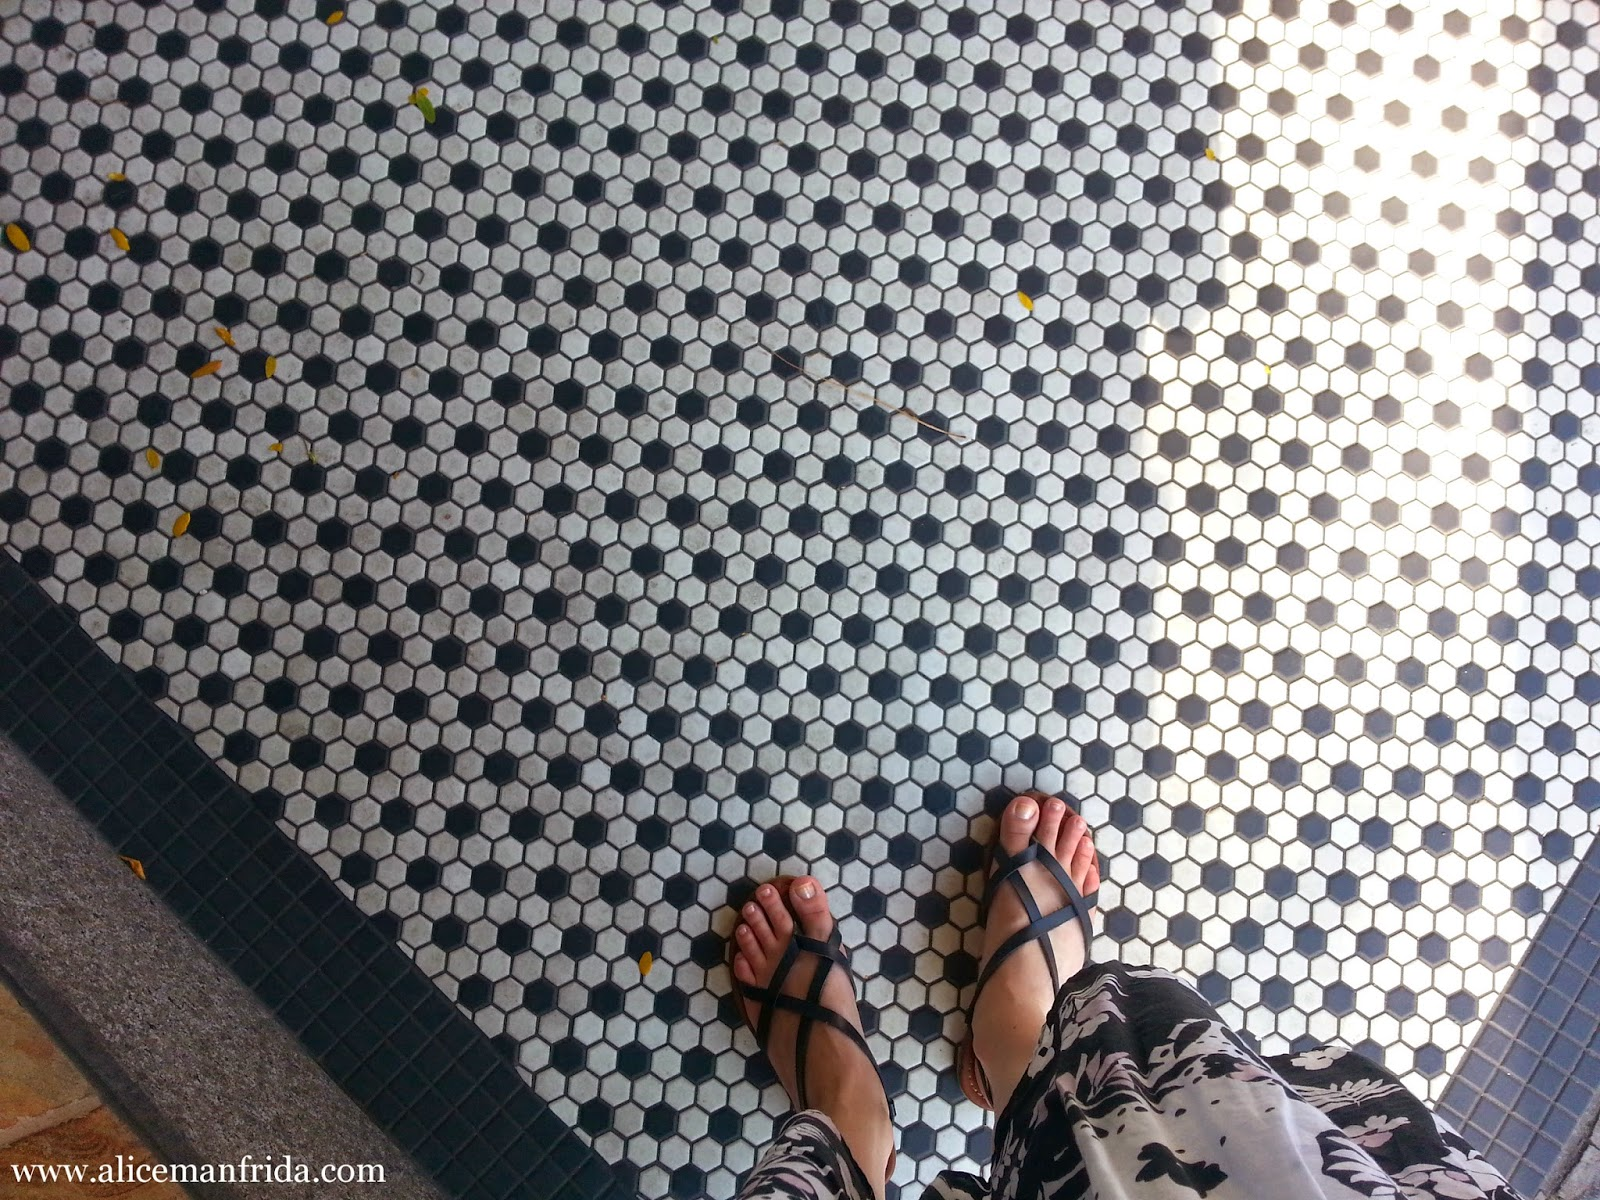 black, white, sandals, tile, leaves, city, street